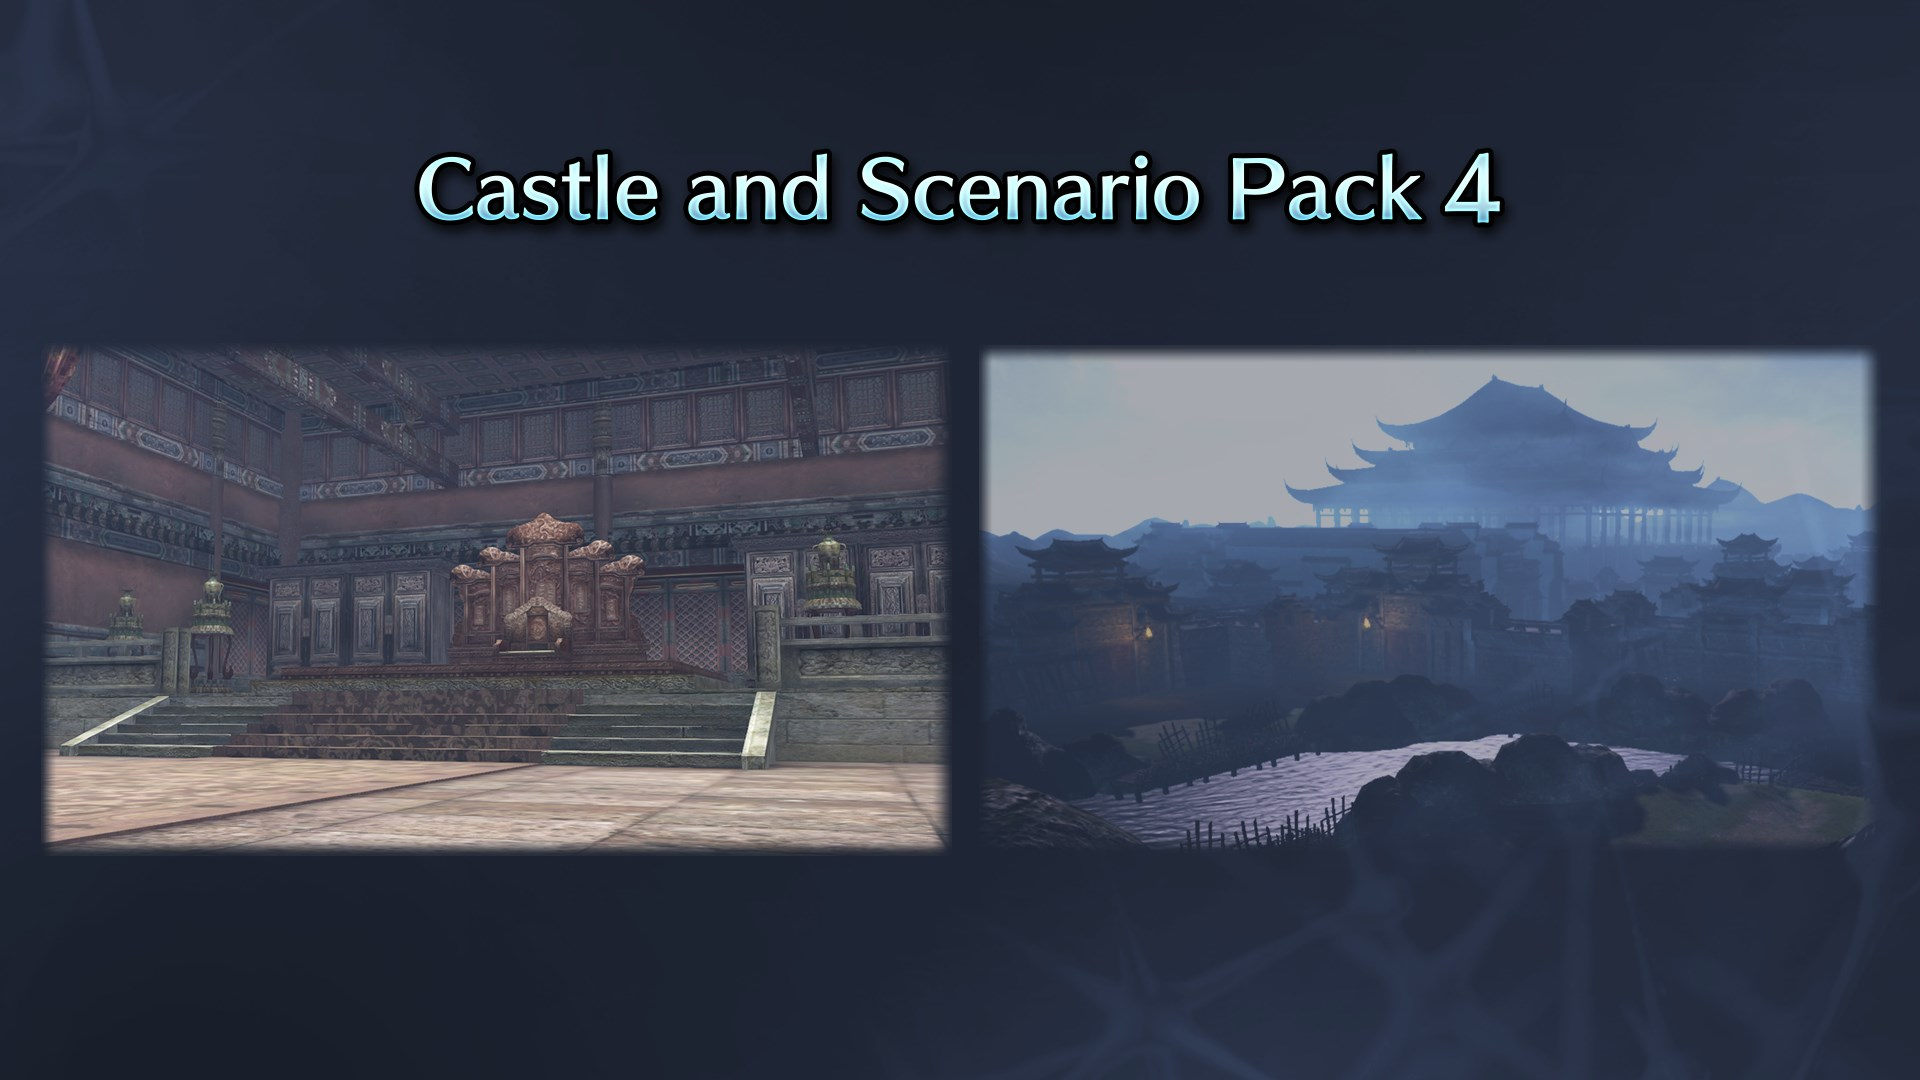 Castle and Scenario Pack 4